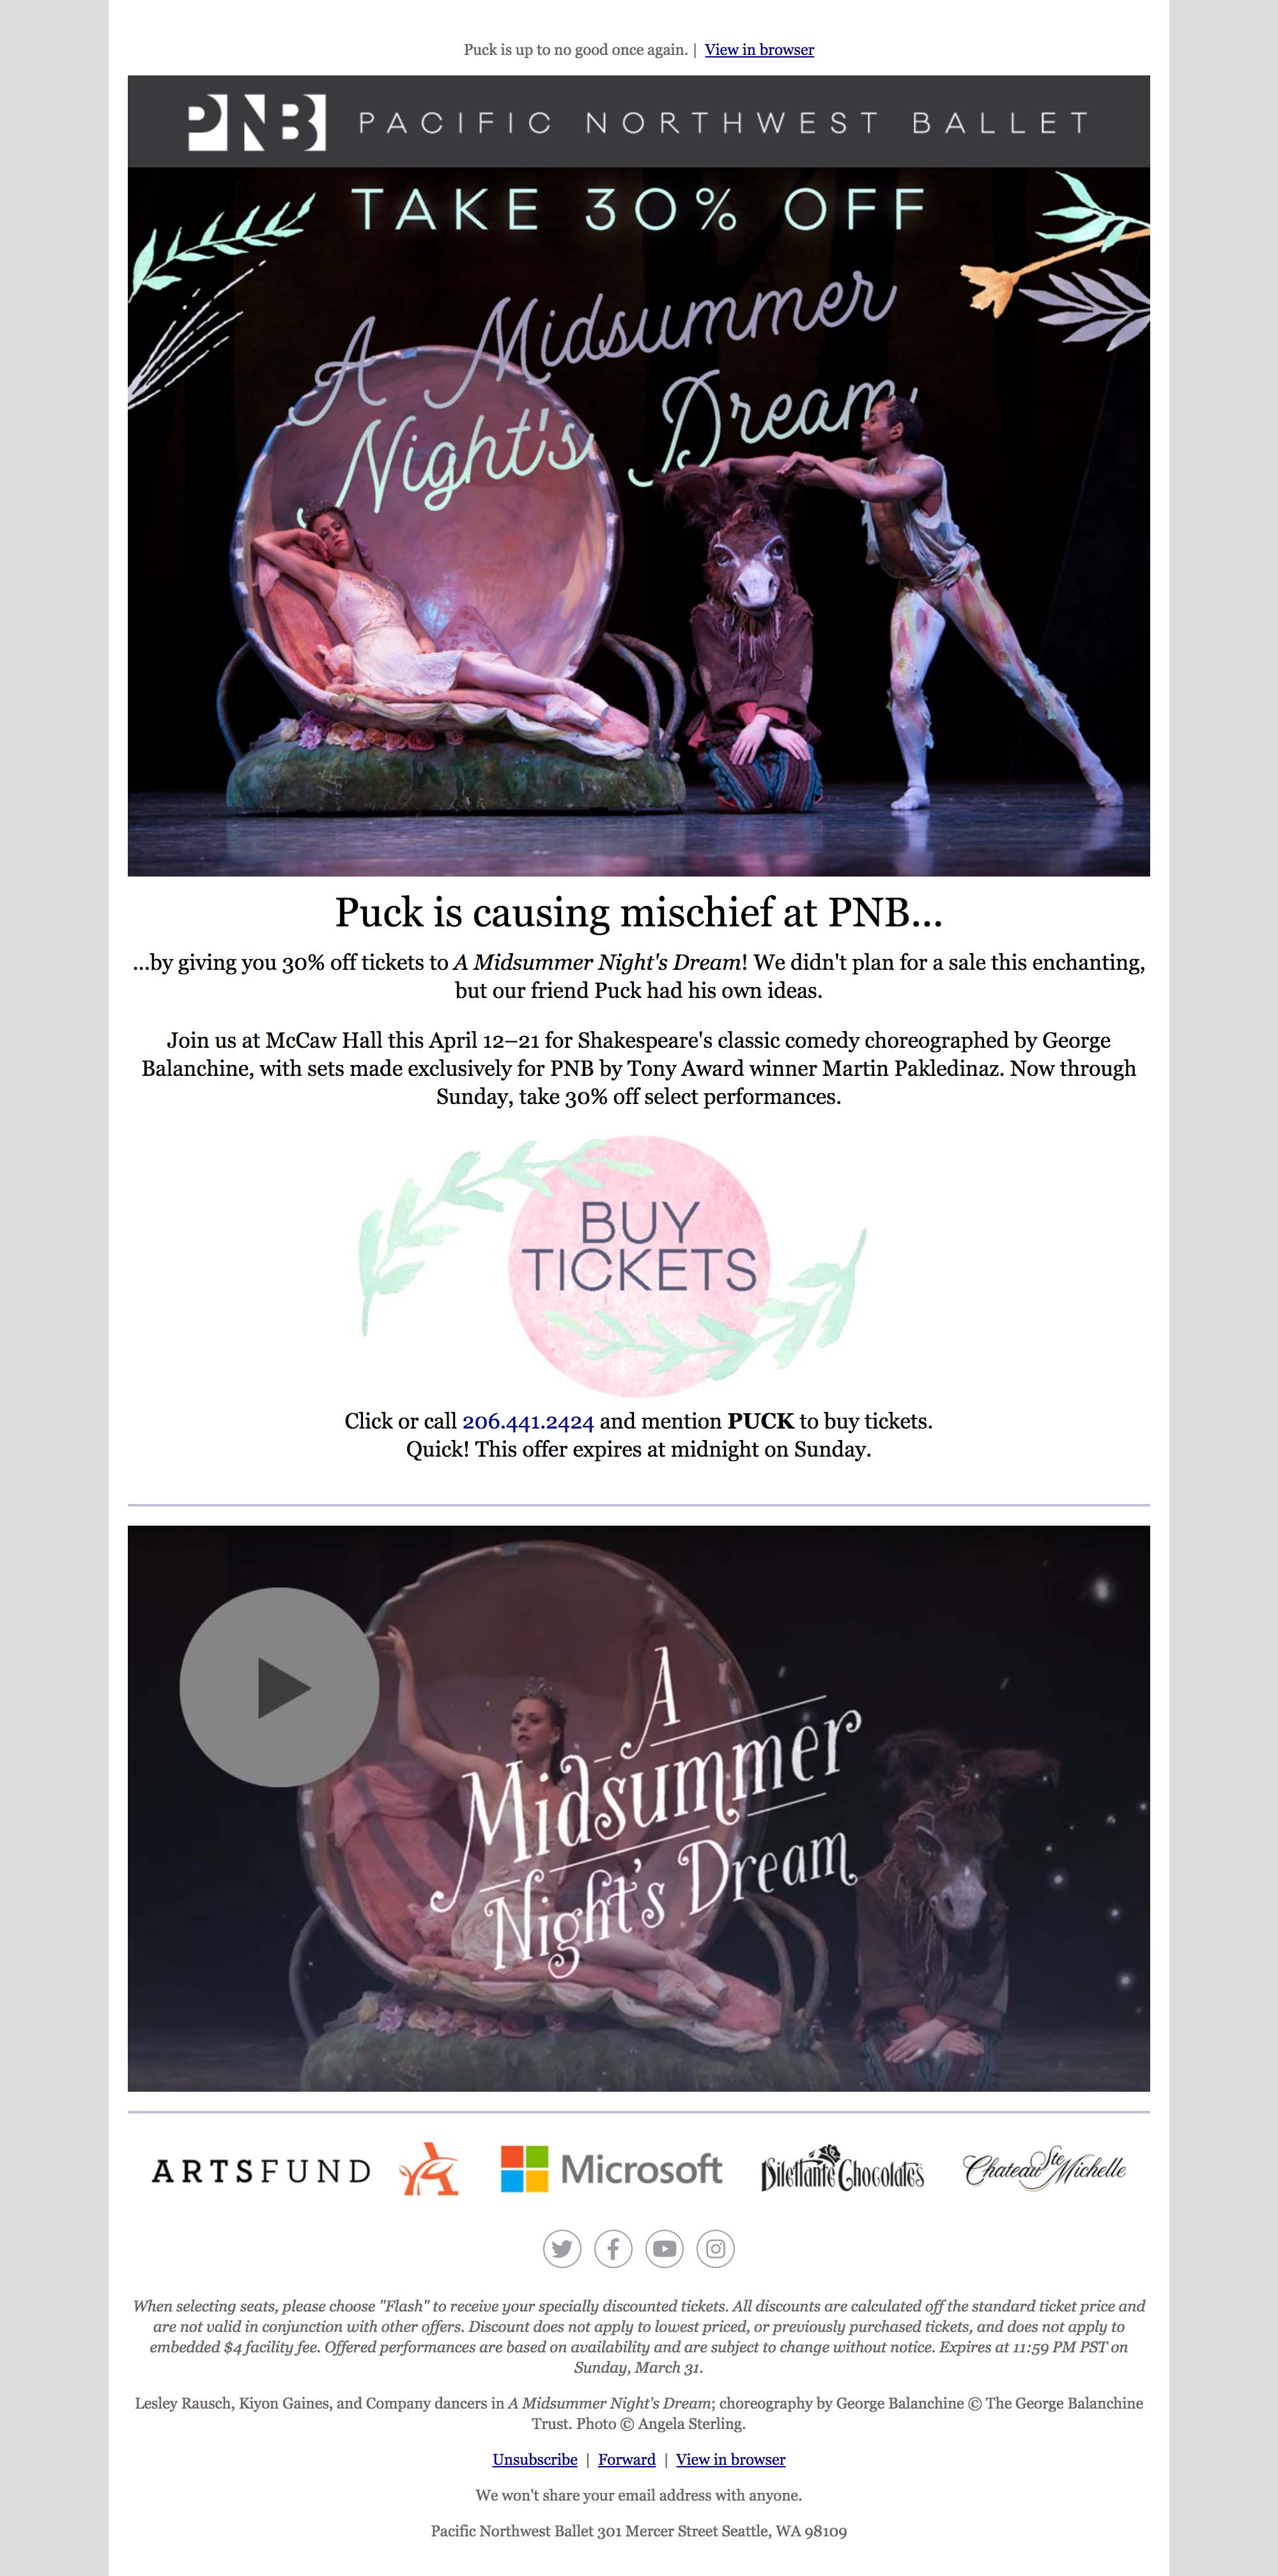 Quick: Take 30% off A Midsummer Night's Dream! - desktop view